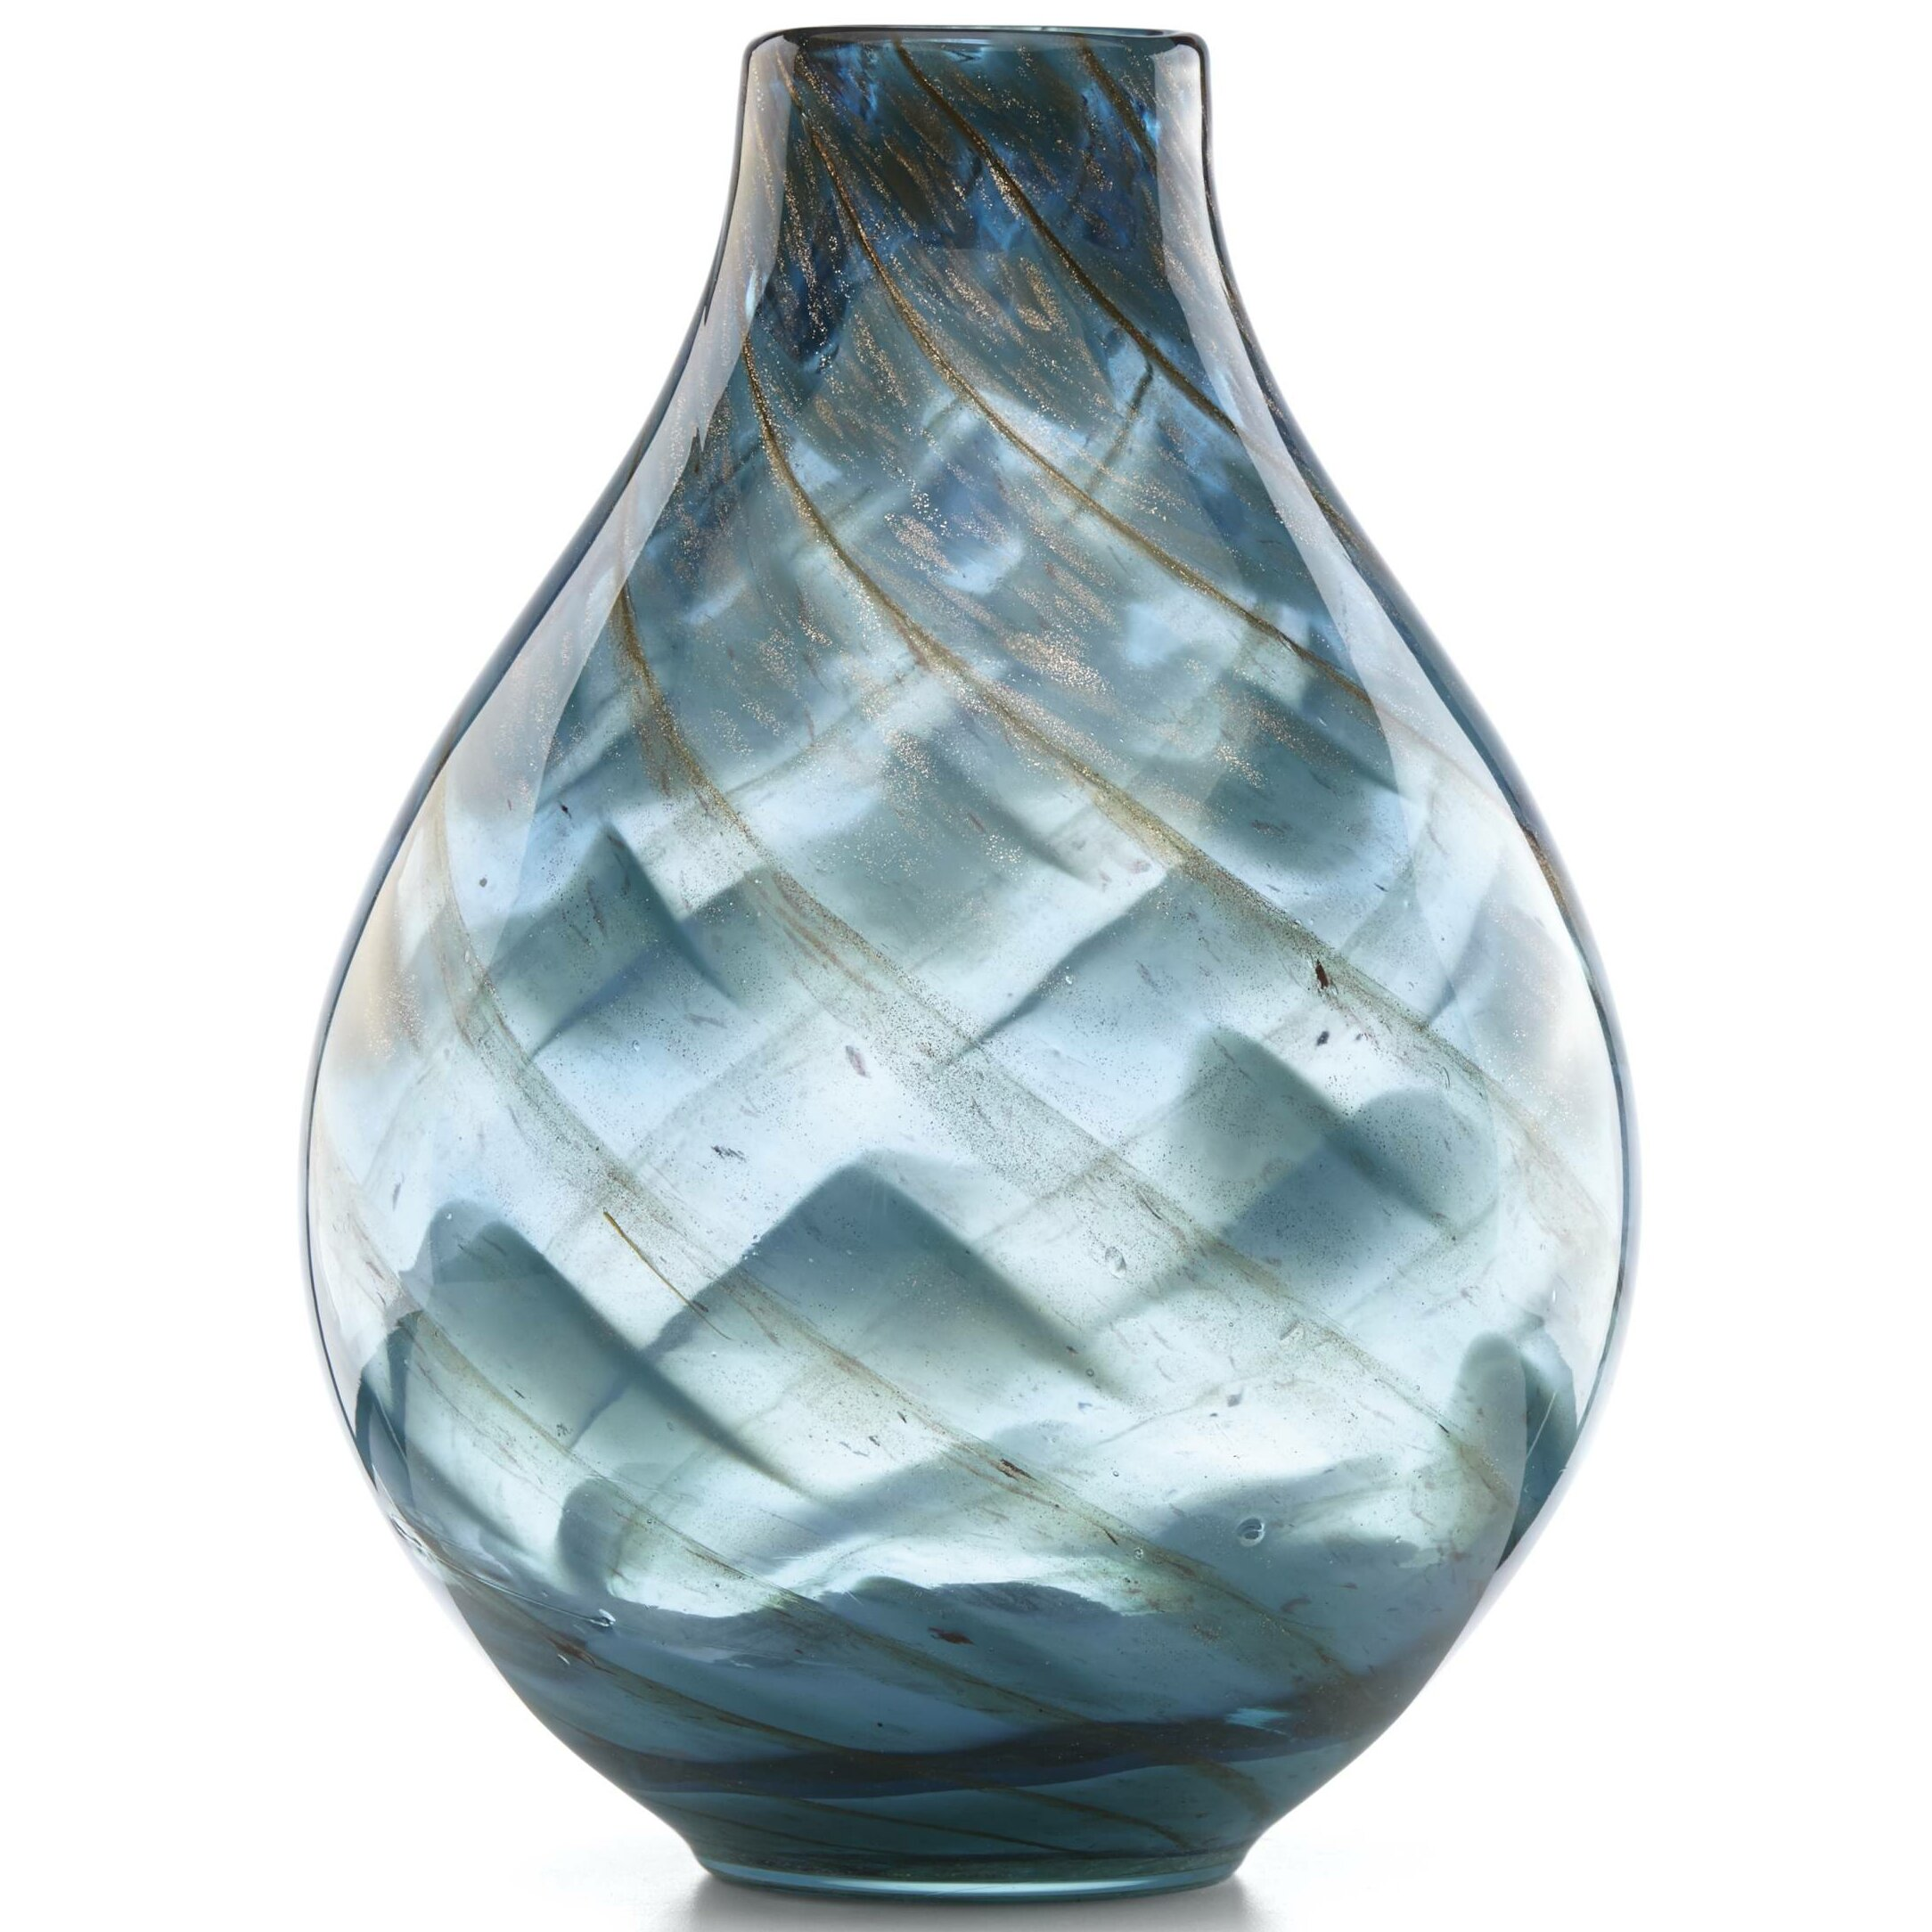 1ffdb7b6b92419 Lenox Seaview Swirl Table Vase   Reviews